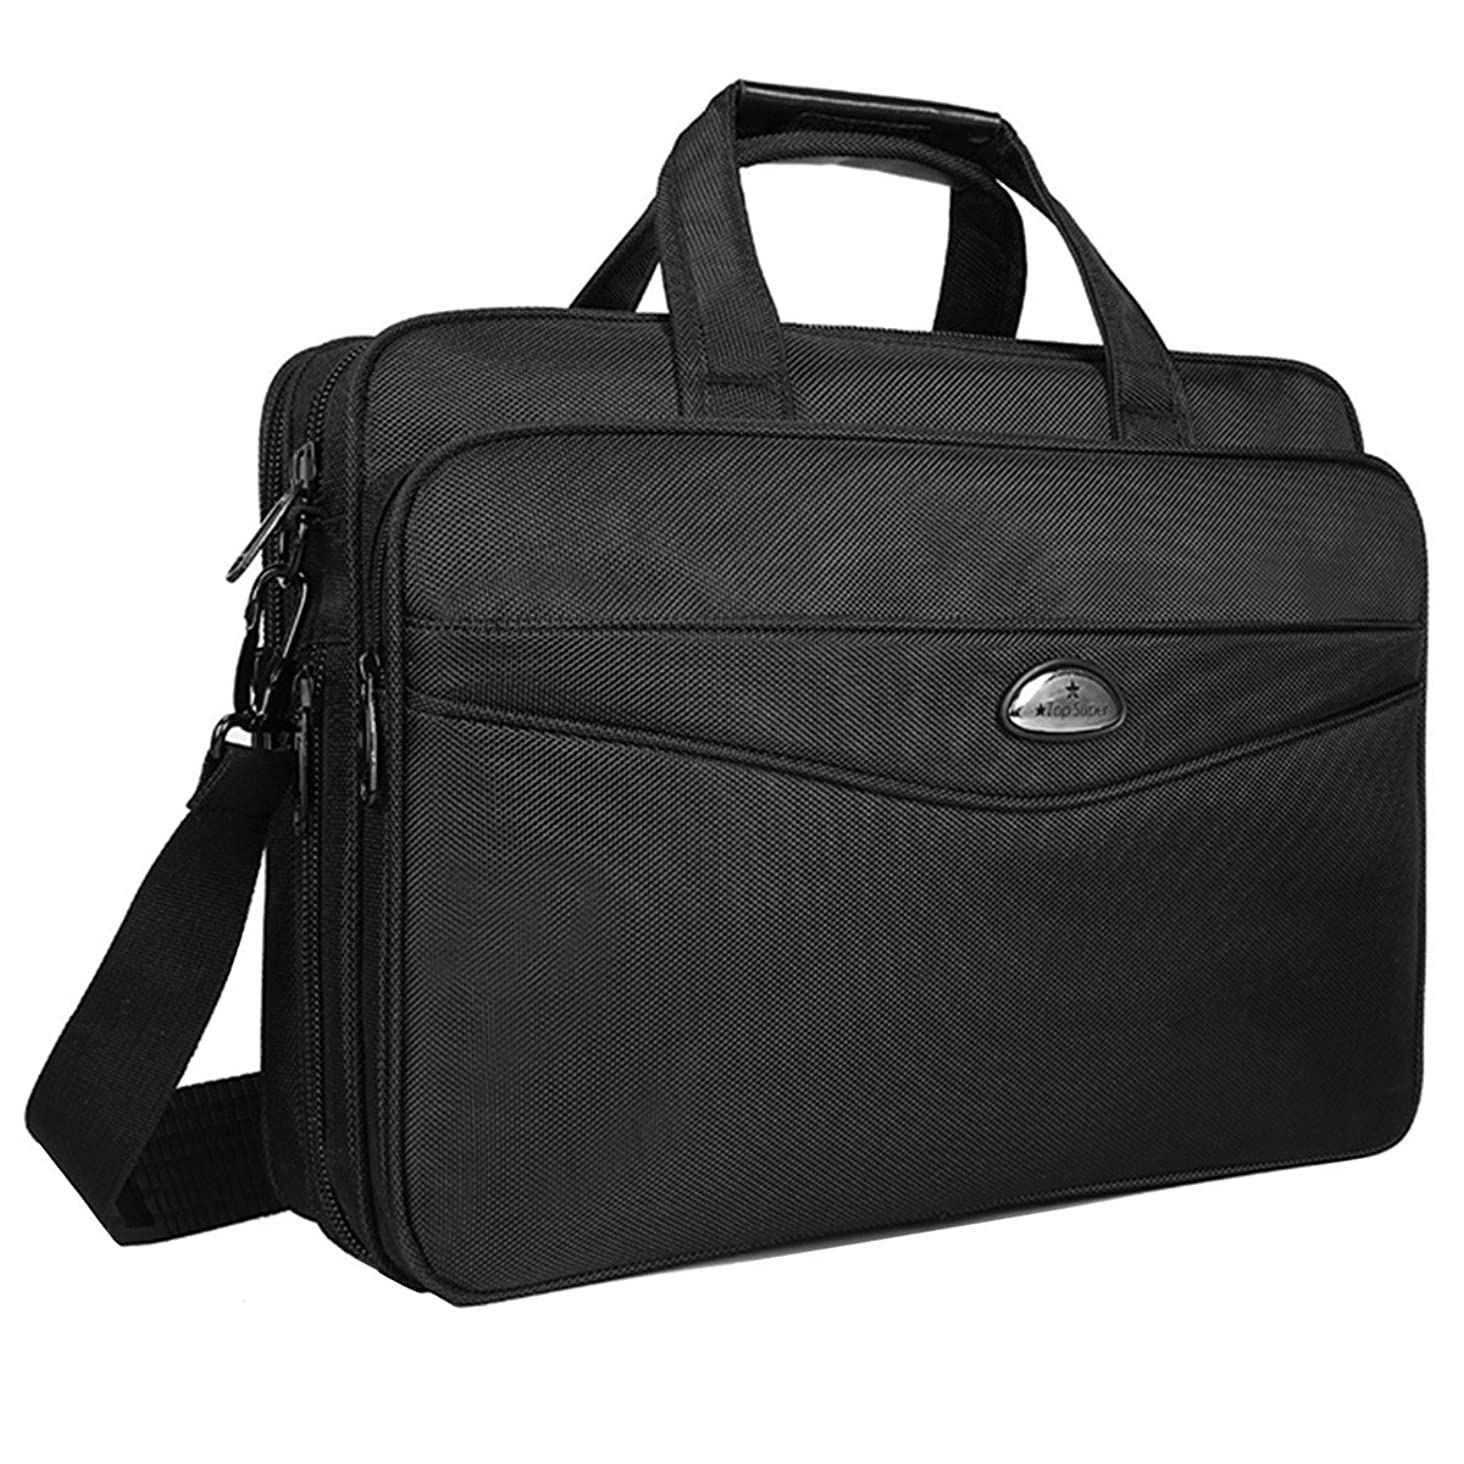 Briefcase 15.6 Inch Laptop Bag Laptop Messenger Bag, Business Office Bag for Men Women Multifunctional Computer Bags Shoulder Bags Fit for 15